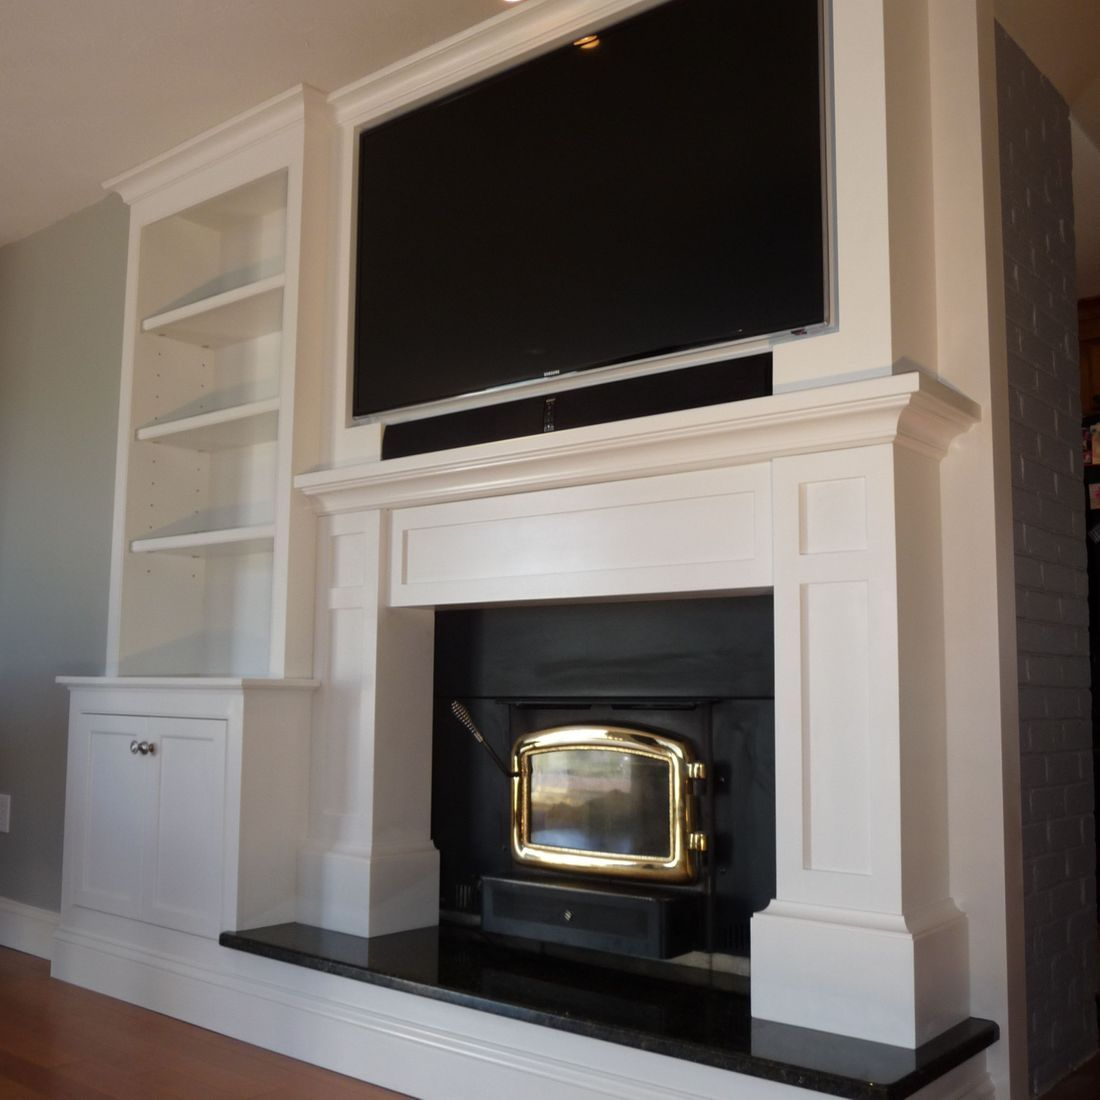 Custom fireplace mantle, TV cabinet, Entertainment Center, and Built-in Cabinet and Bookcase